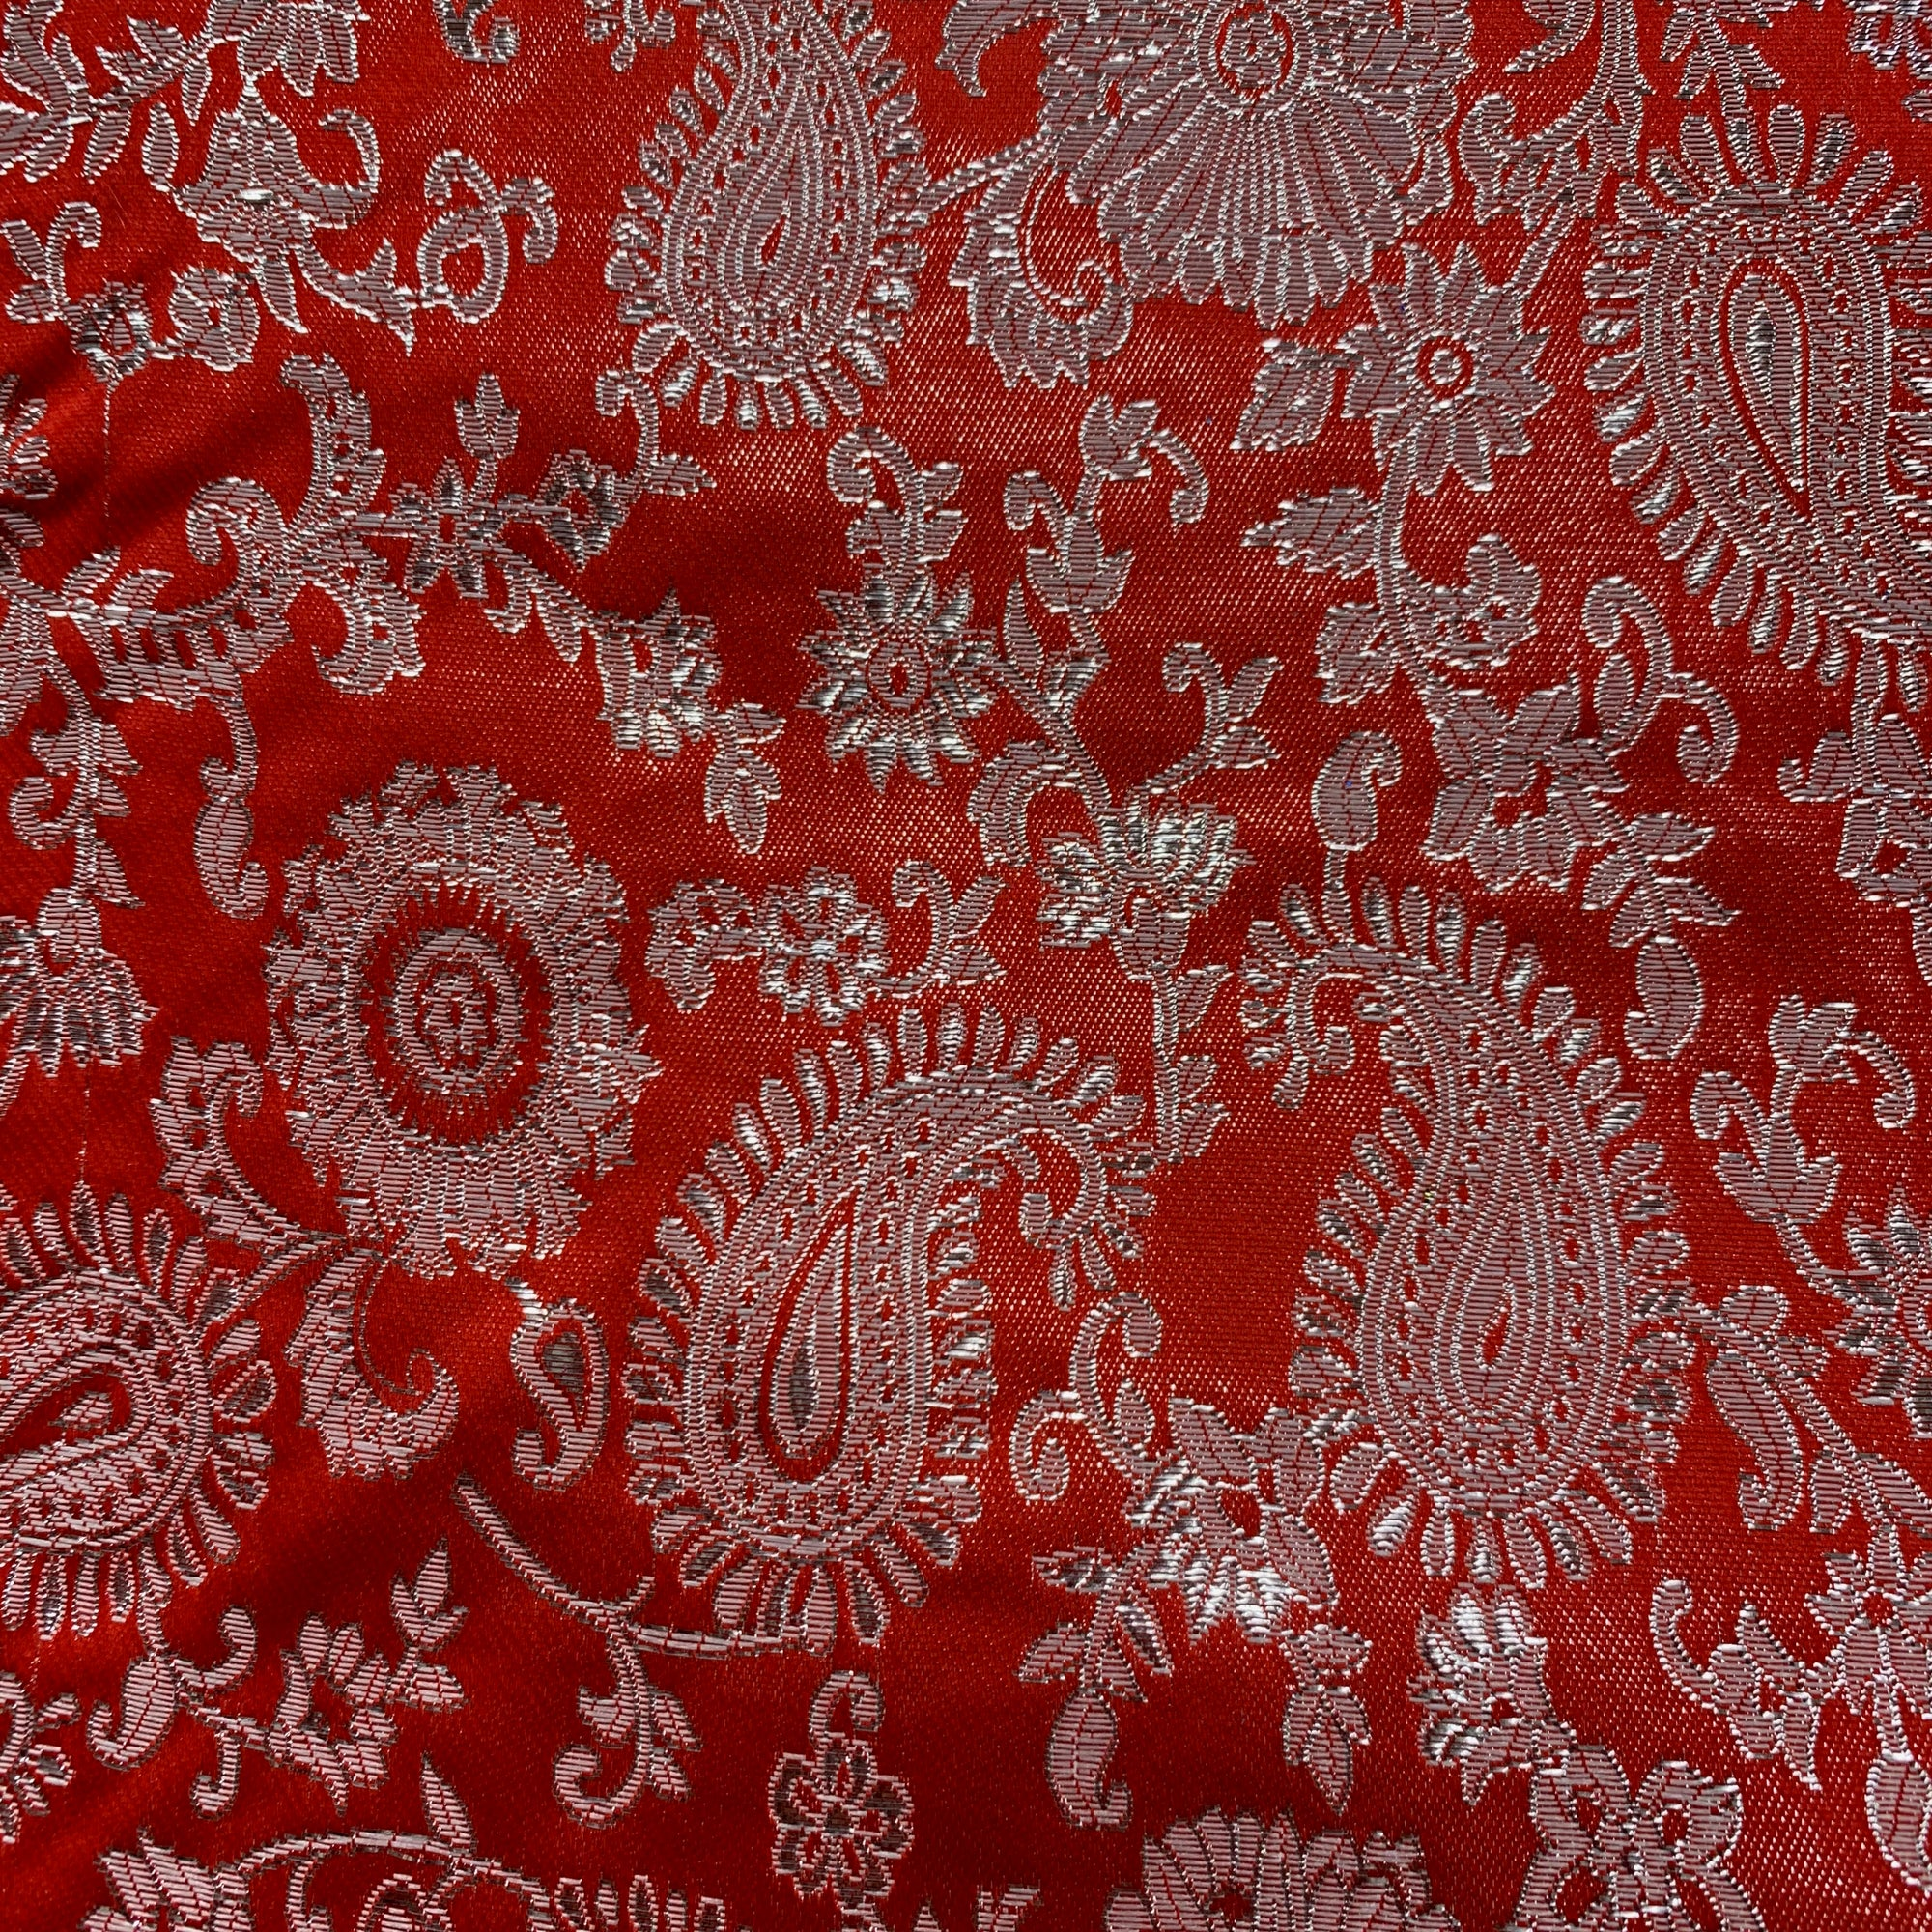 Holly RED Paisley Floral Brocade Chinese Satin Fabric by the Yard